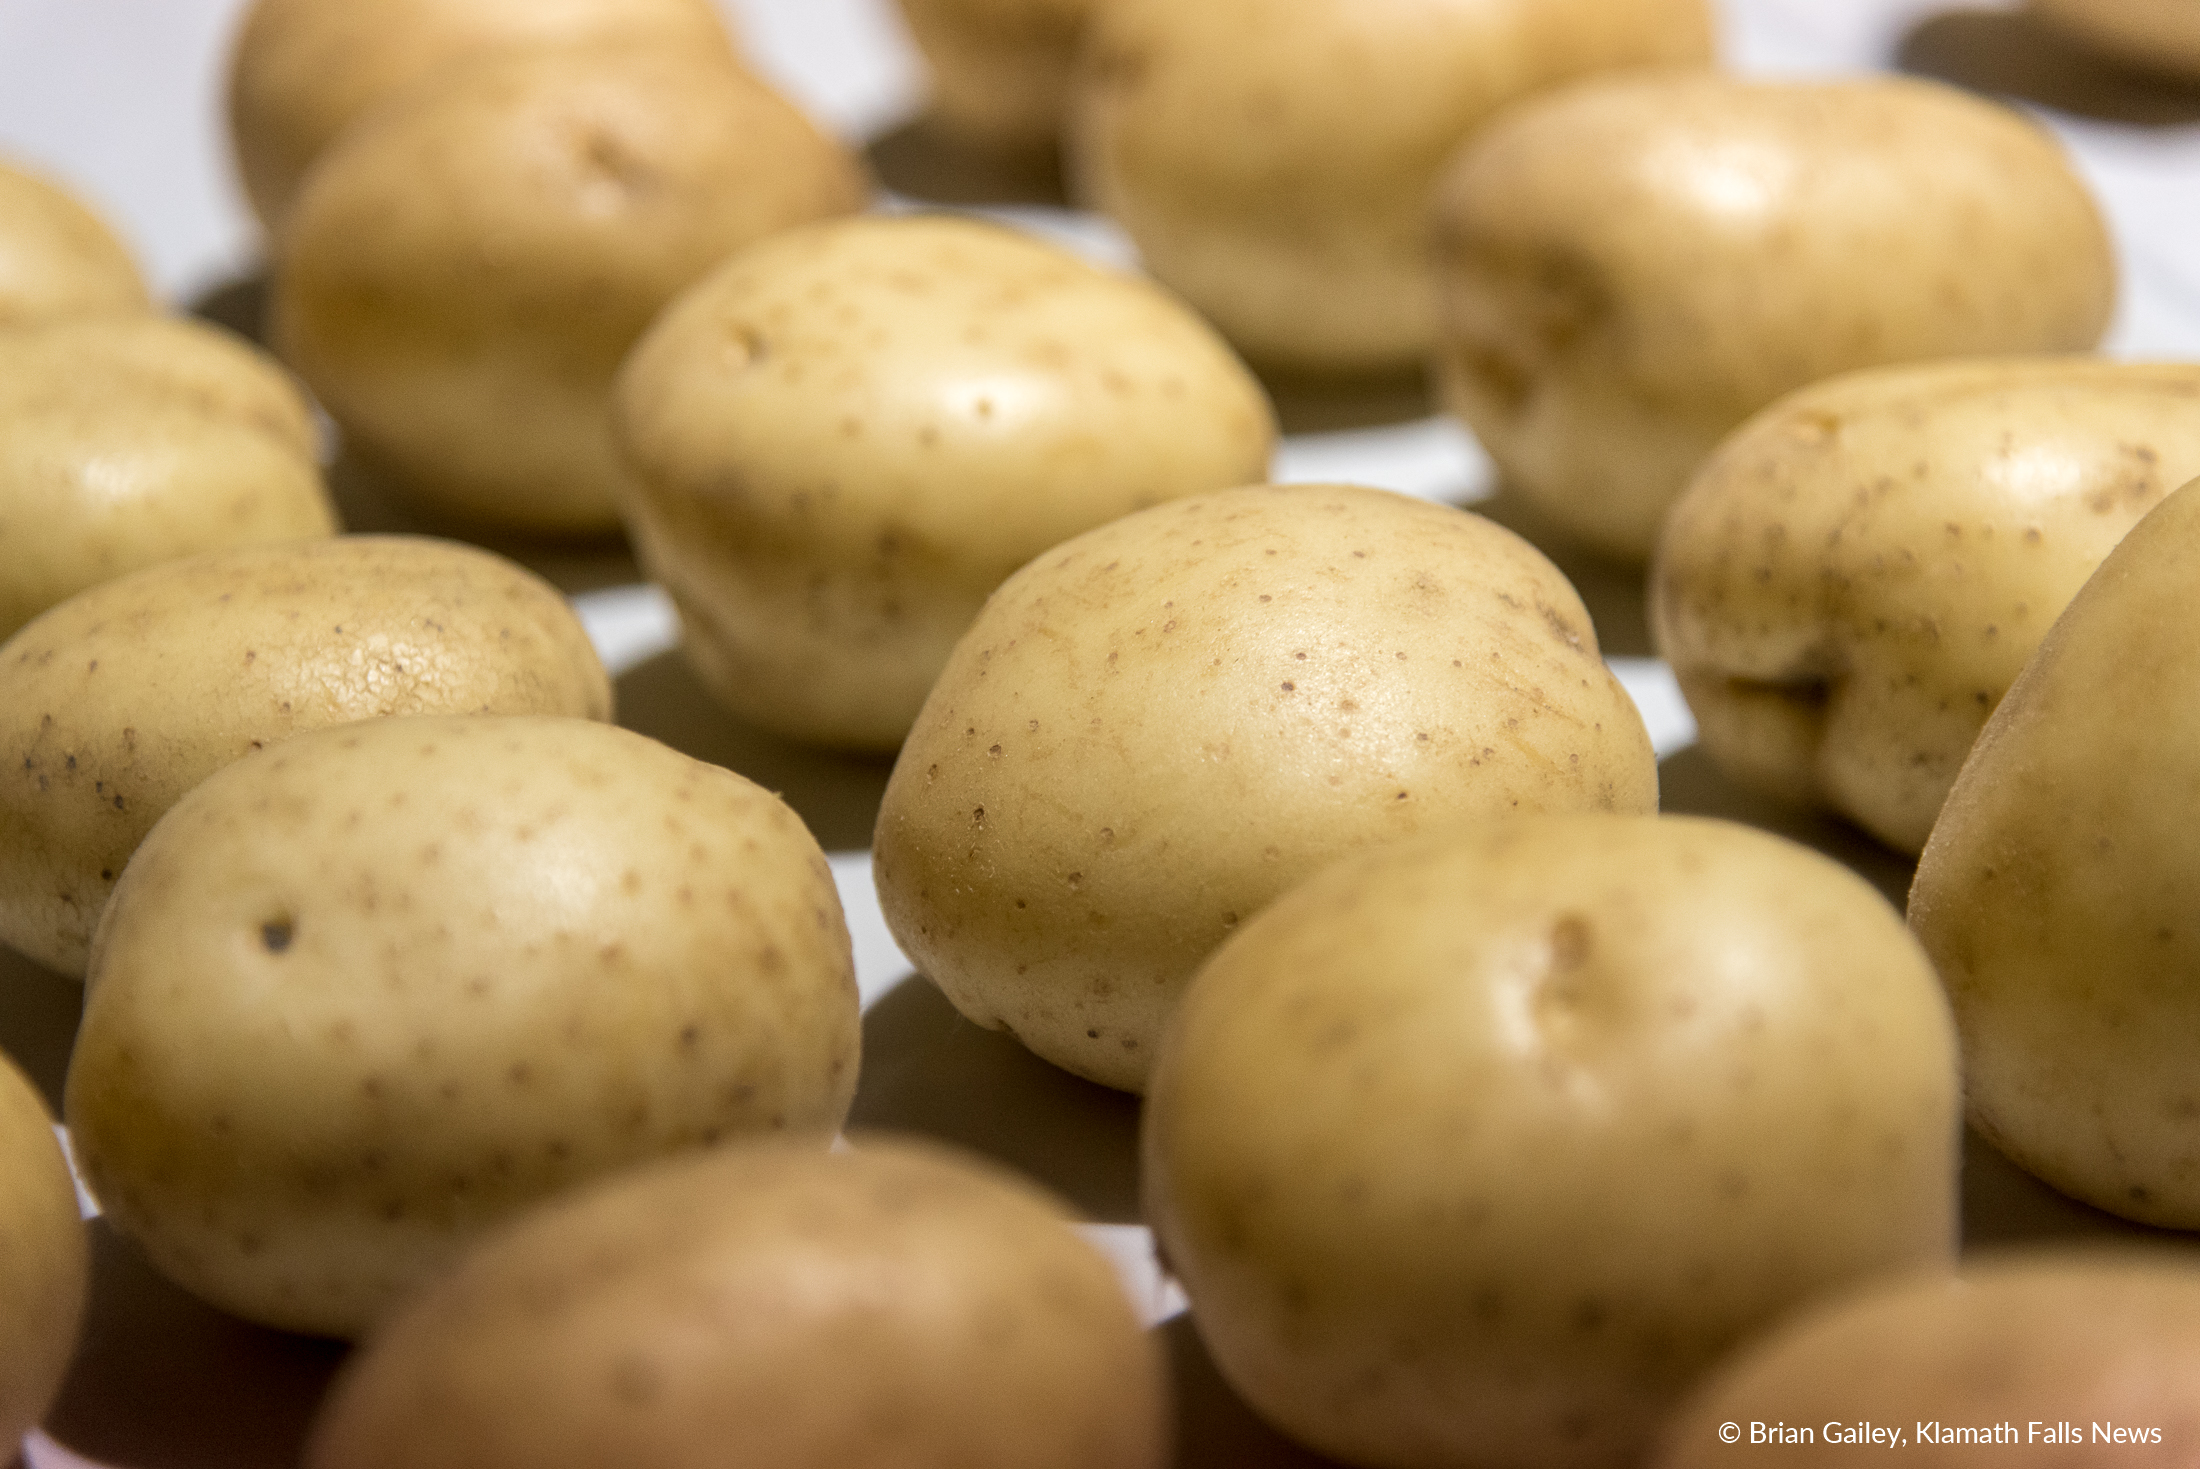 """A close up of the """"chipping"""" potato. Unlike a brown russet potato grown for the open market, these specialty potatoes are grown specifically for Frito-Lay under contract. This way processors and growers know what they will earn at the end of the season. (Brian Gailey)"""